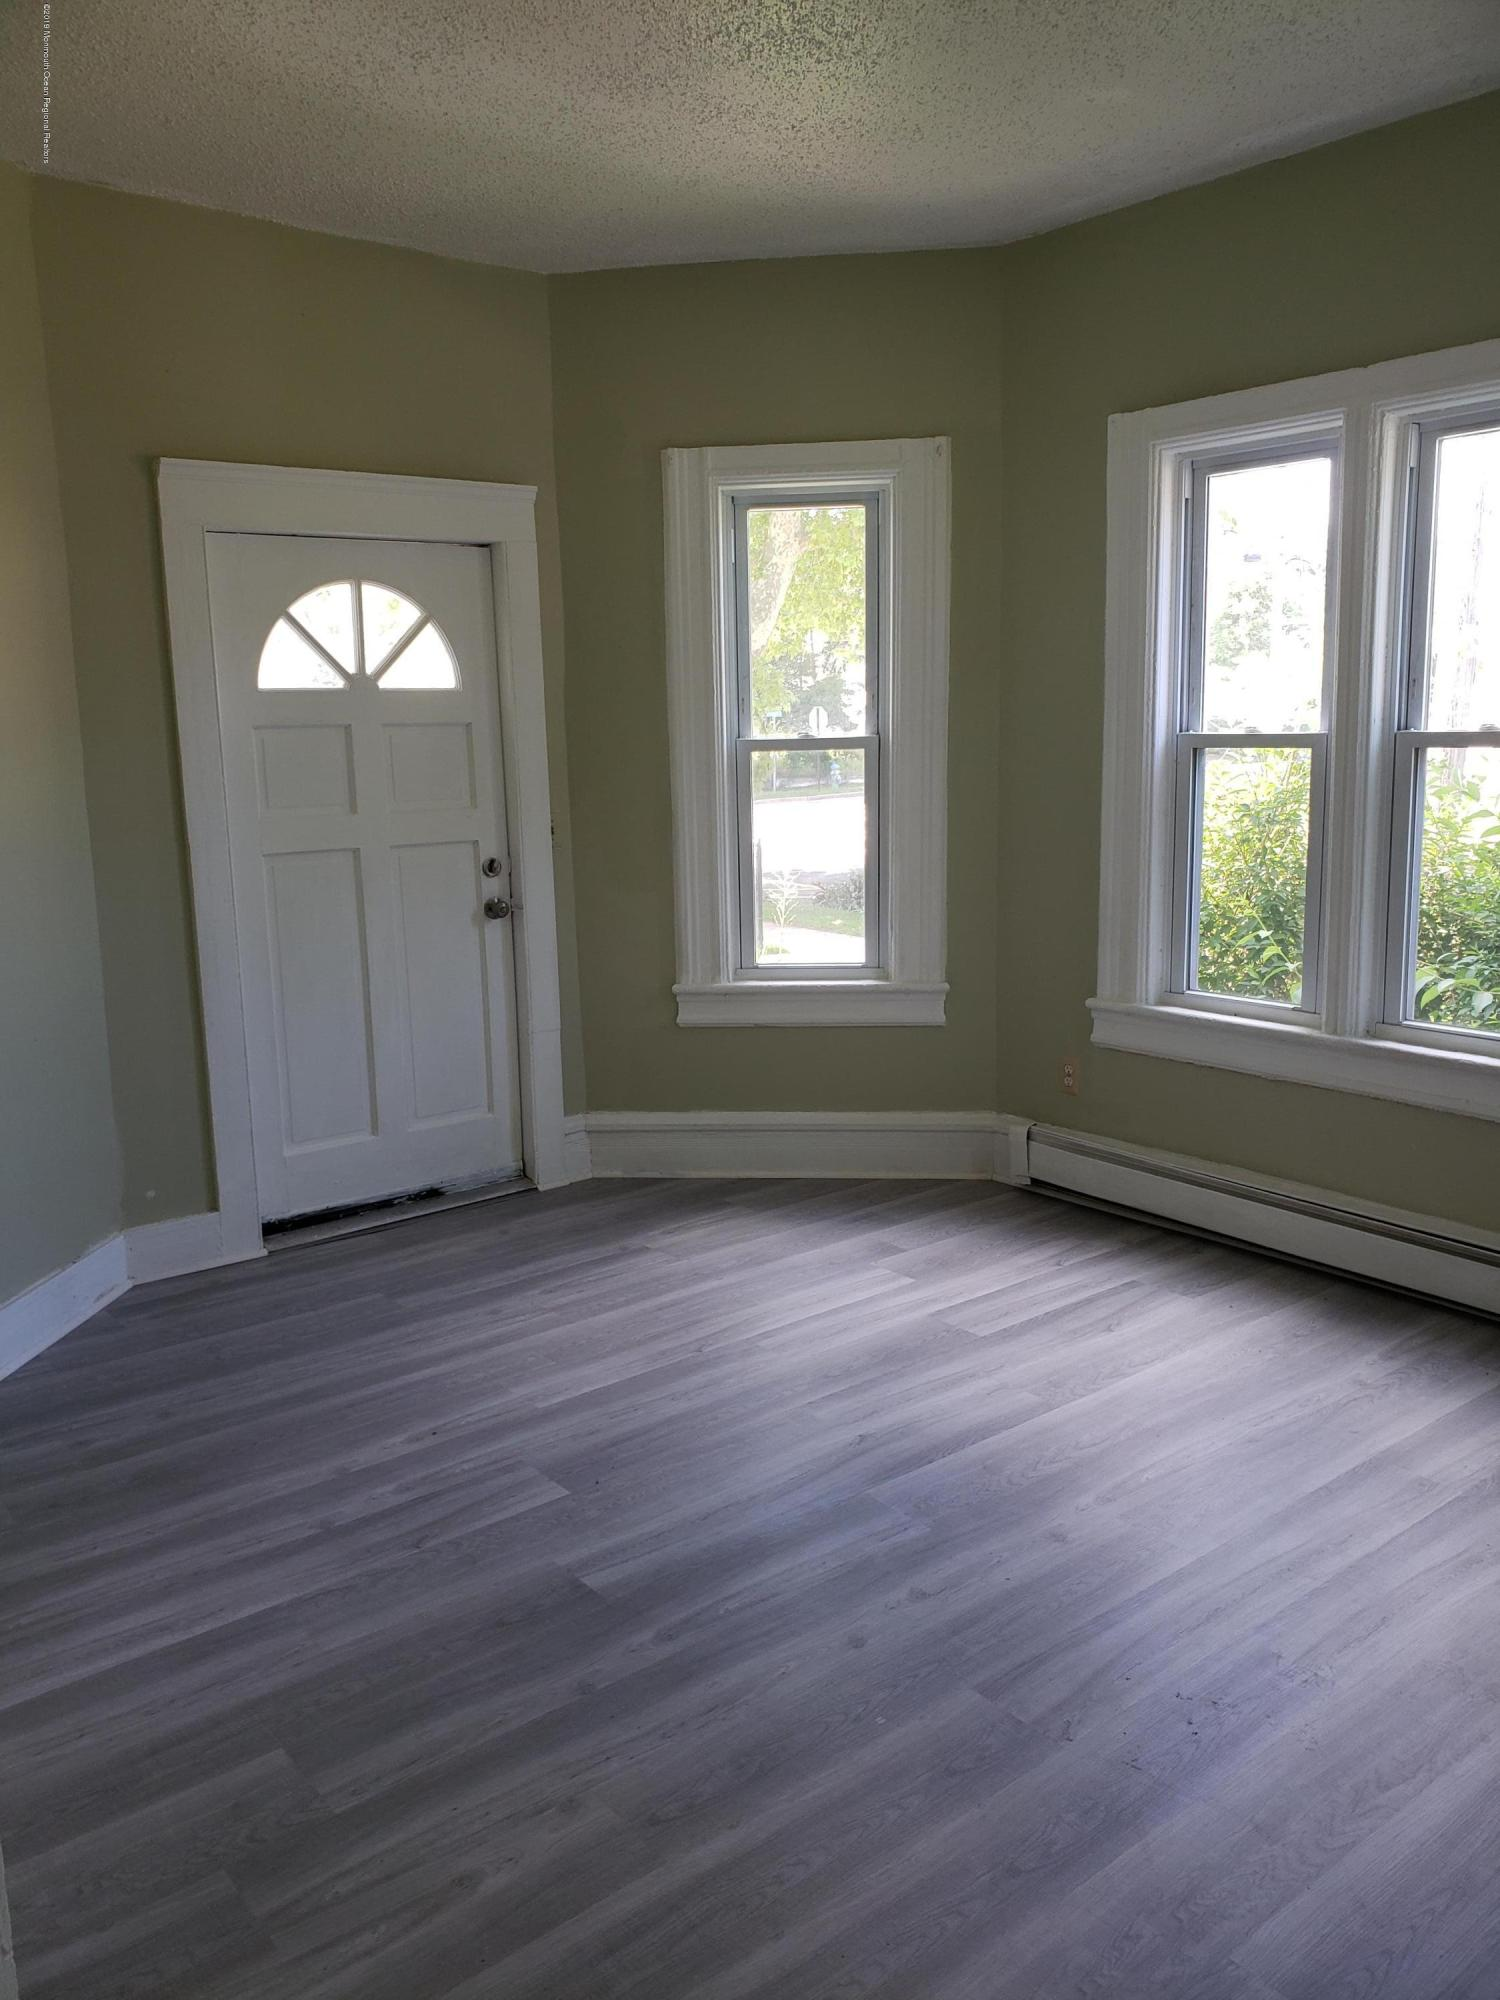 Spacious 3 bed 1 bath with high ceilings and hardwood floors, and private porch Located 1&1/2 blocks to downtown. 1/2 block from NJ Transit hub. Shared side yard and driveway. Tenants must have good credit. No pets, no smoking.